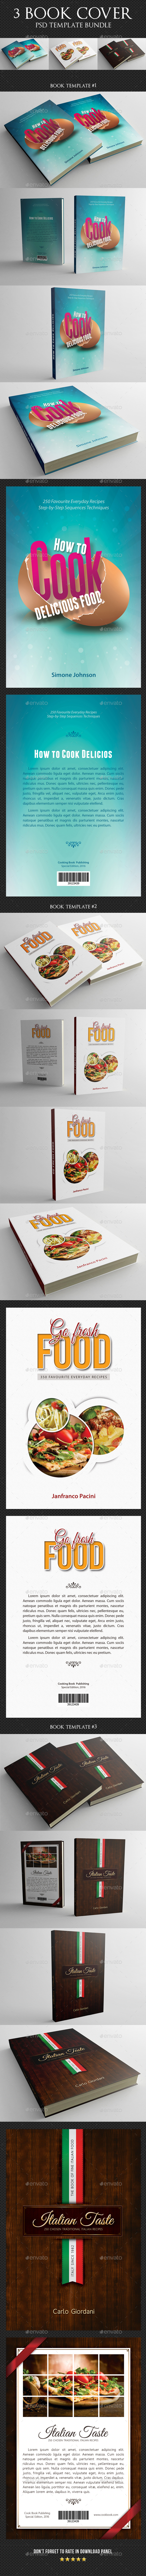 3 in 1 Cook Food Book Cover Template Bundle - Miscellaneous Print Templates